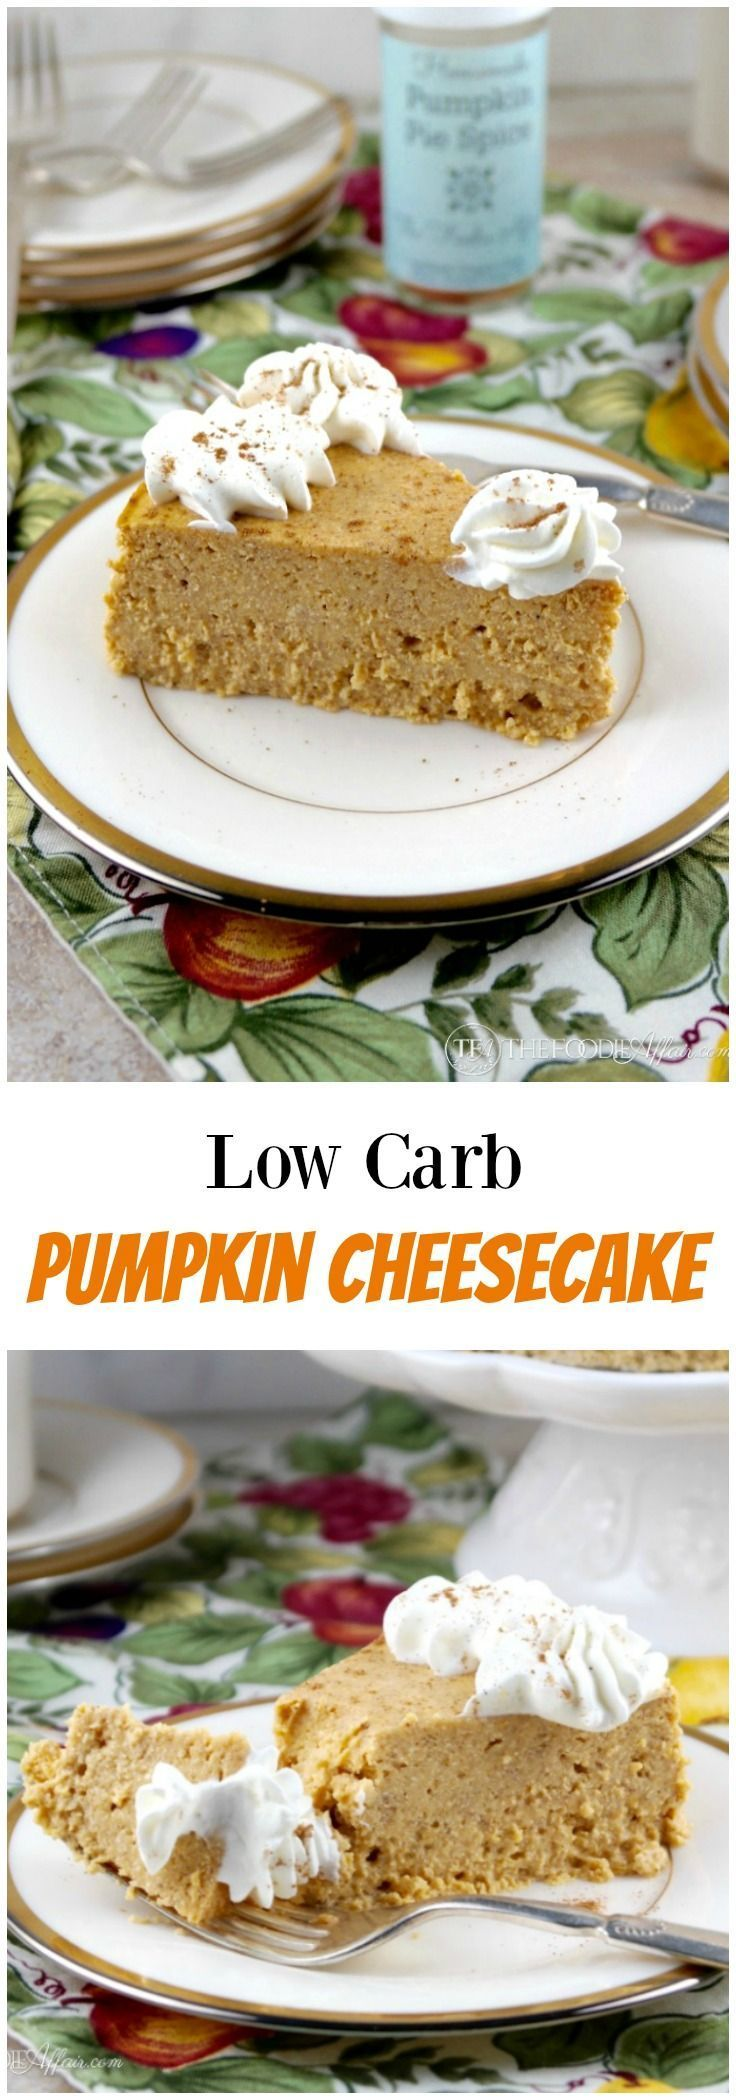 Low carb pumpkin cheesecake made with homemade pumpkin pie spices, pumpkin puree…